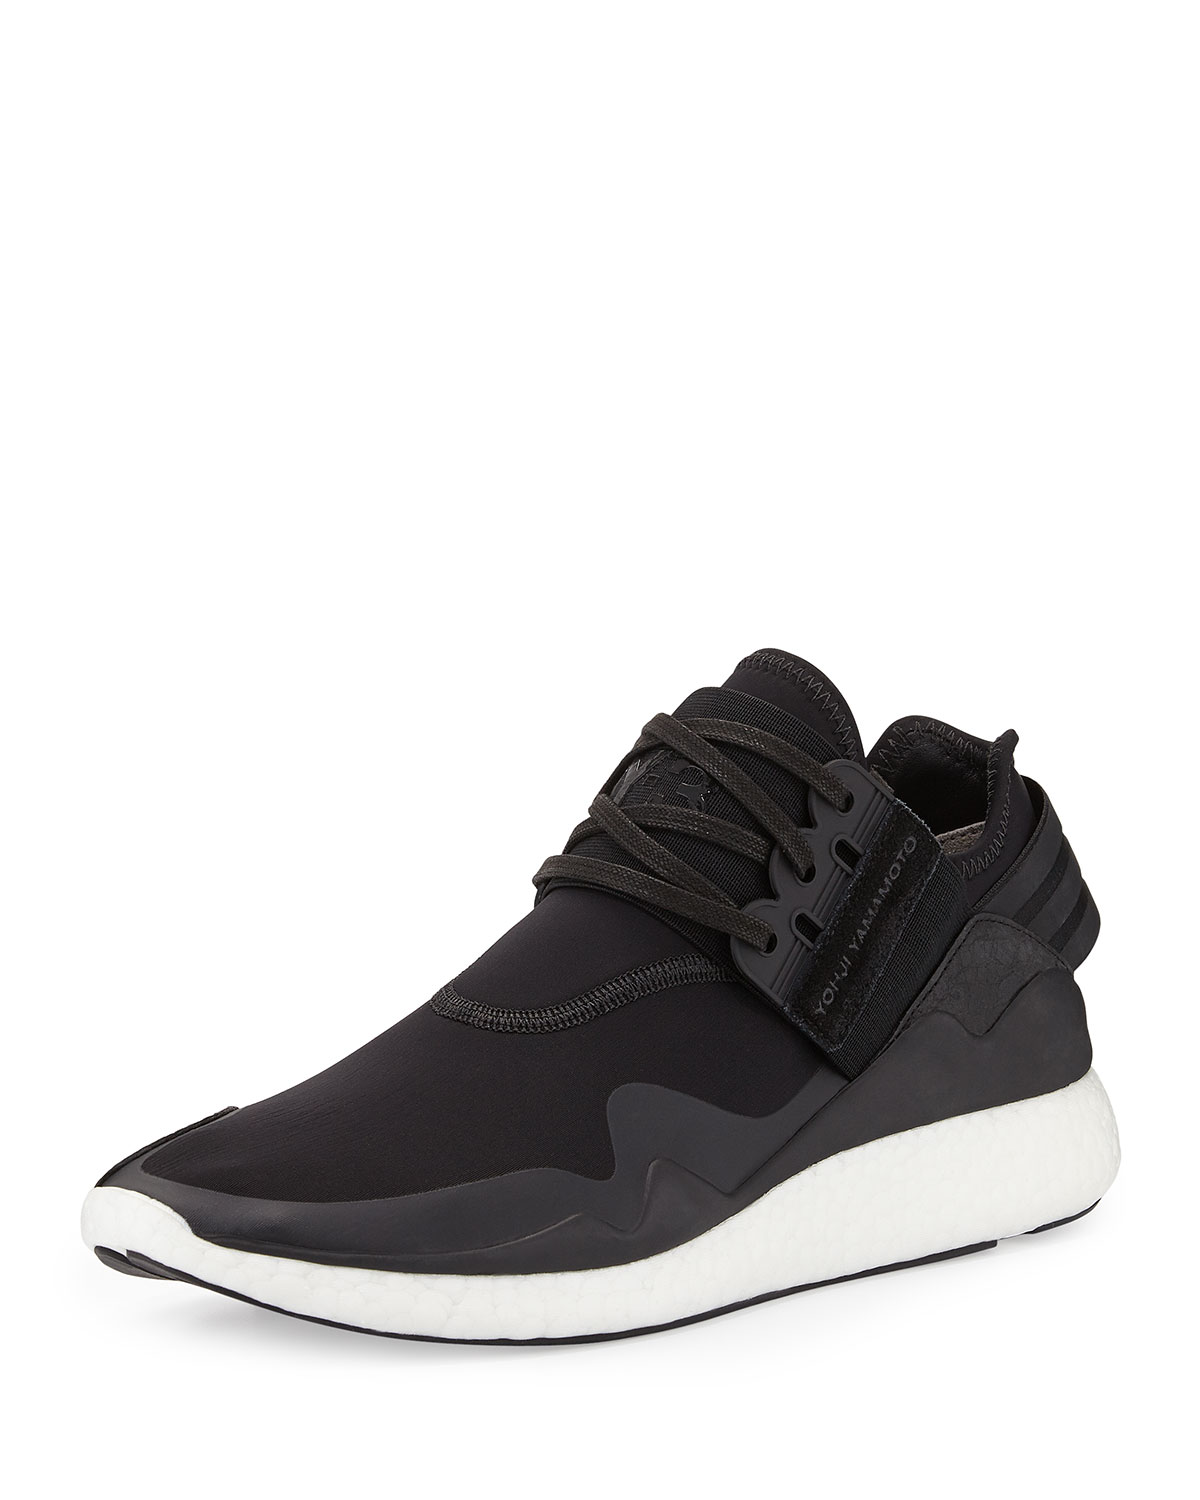 c52d78c47a220 Y-3 Men s Retro Boost Sneakers